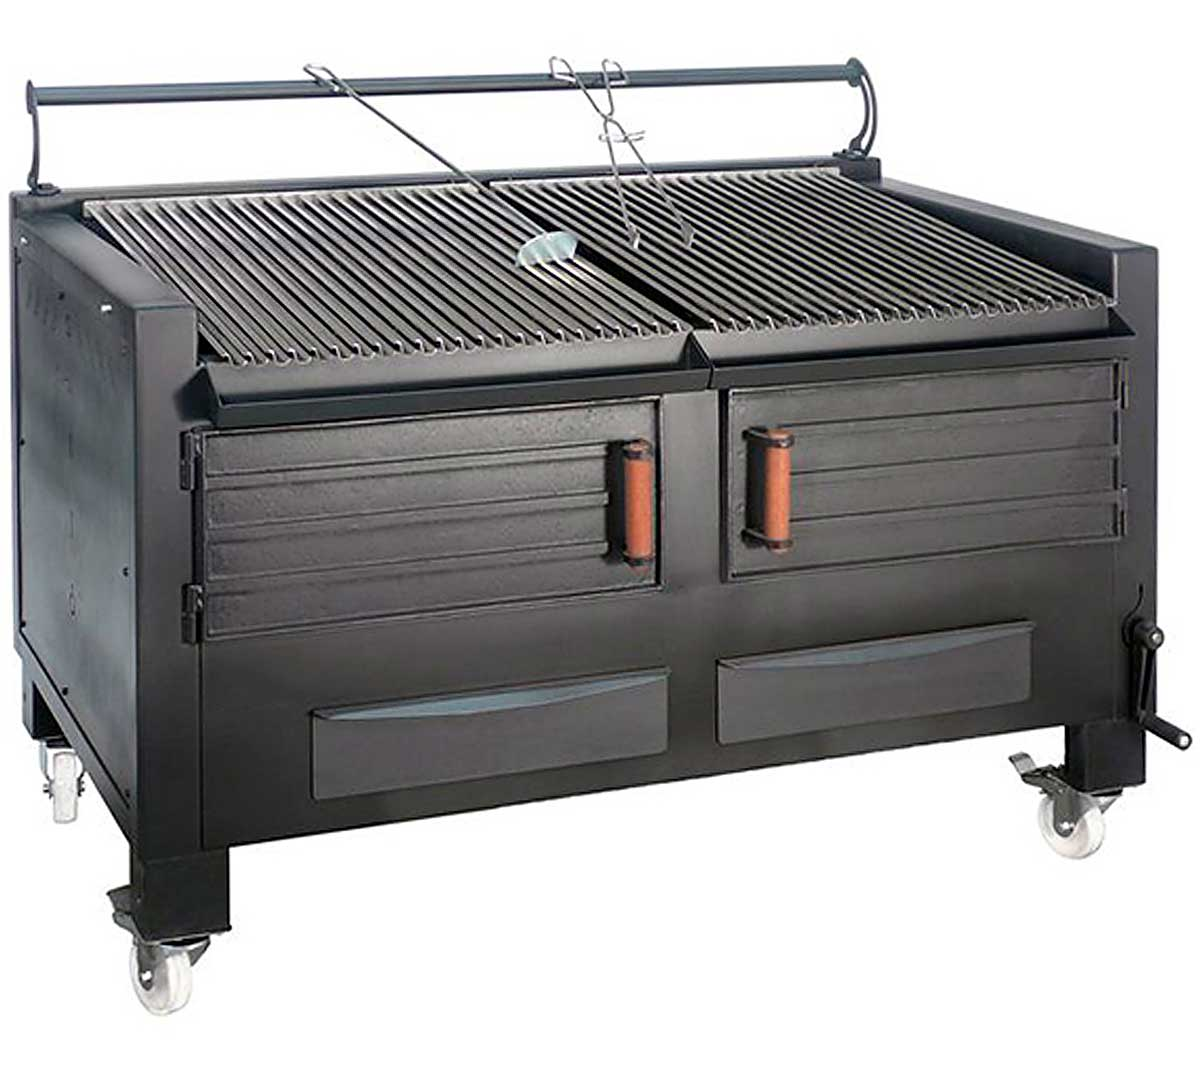 Barbacoa brasa bbq m150 de pira for Barbacoa bbq